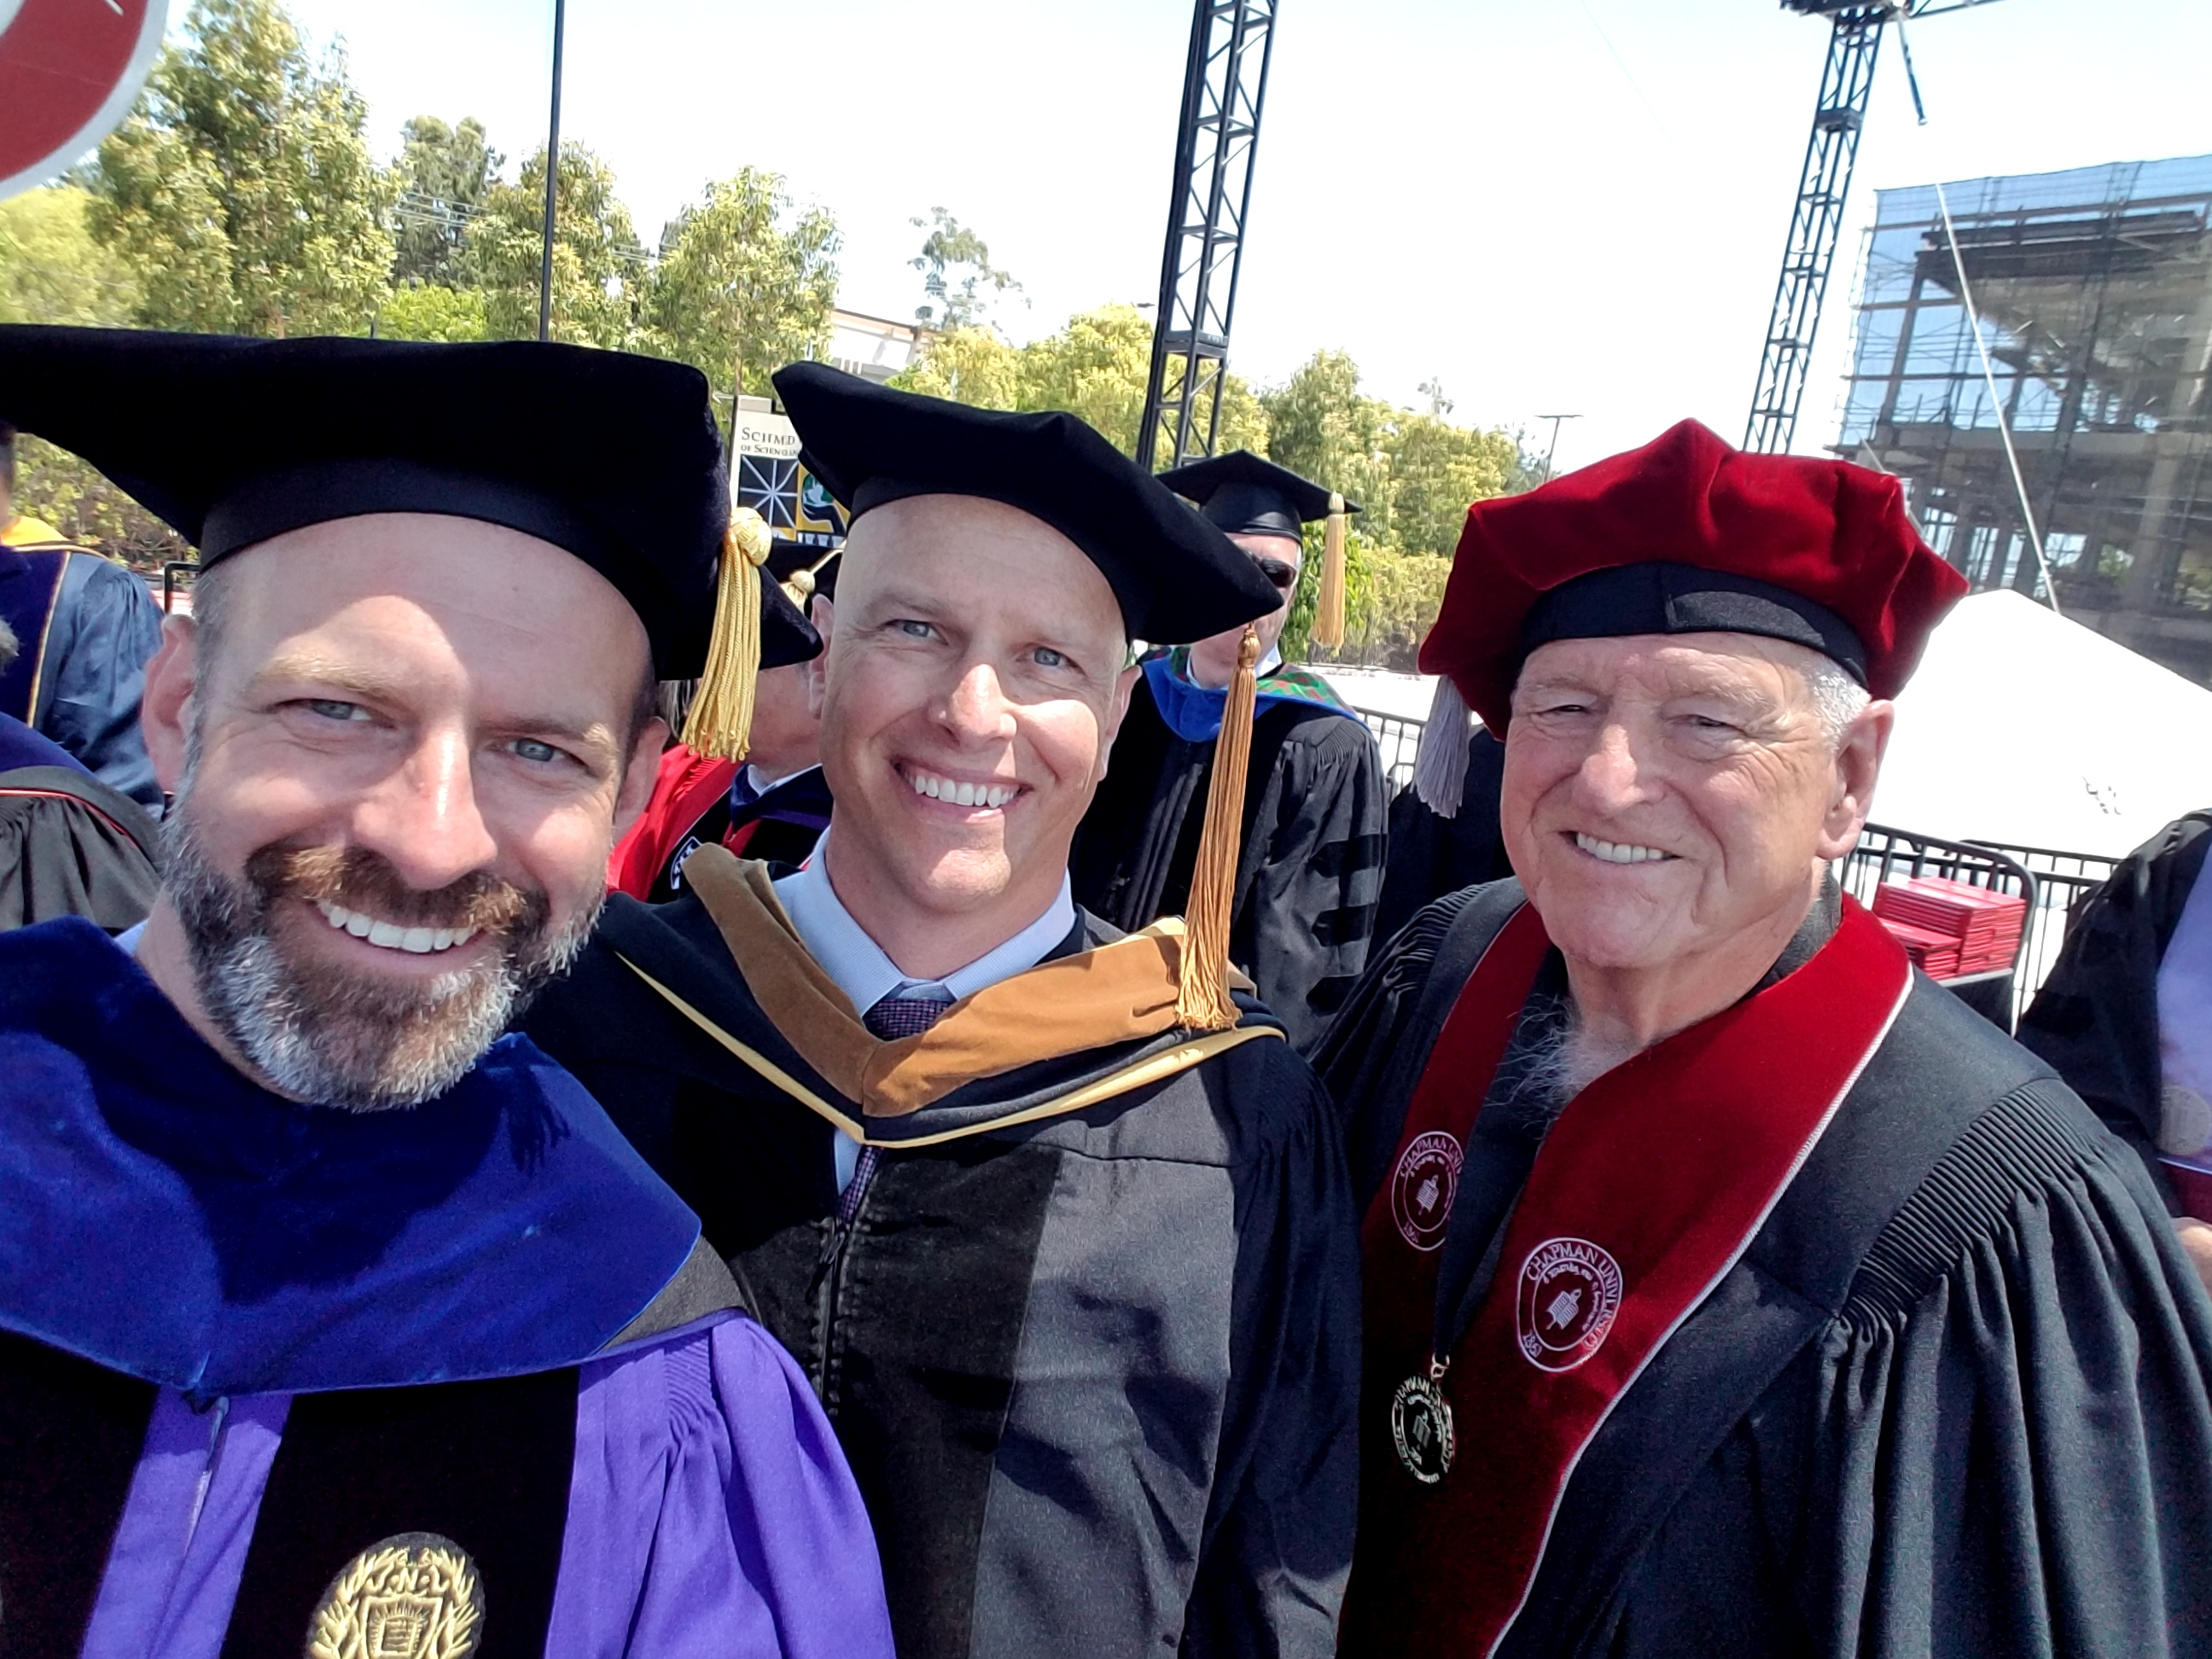 Schmid College Dean Andrew Lyon (left) on stage at 2017 Commnecement ceremony with keynote speaker Paul Cook (center) and Trustee Richard Schmid (right)